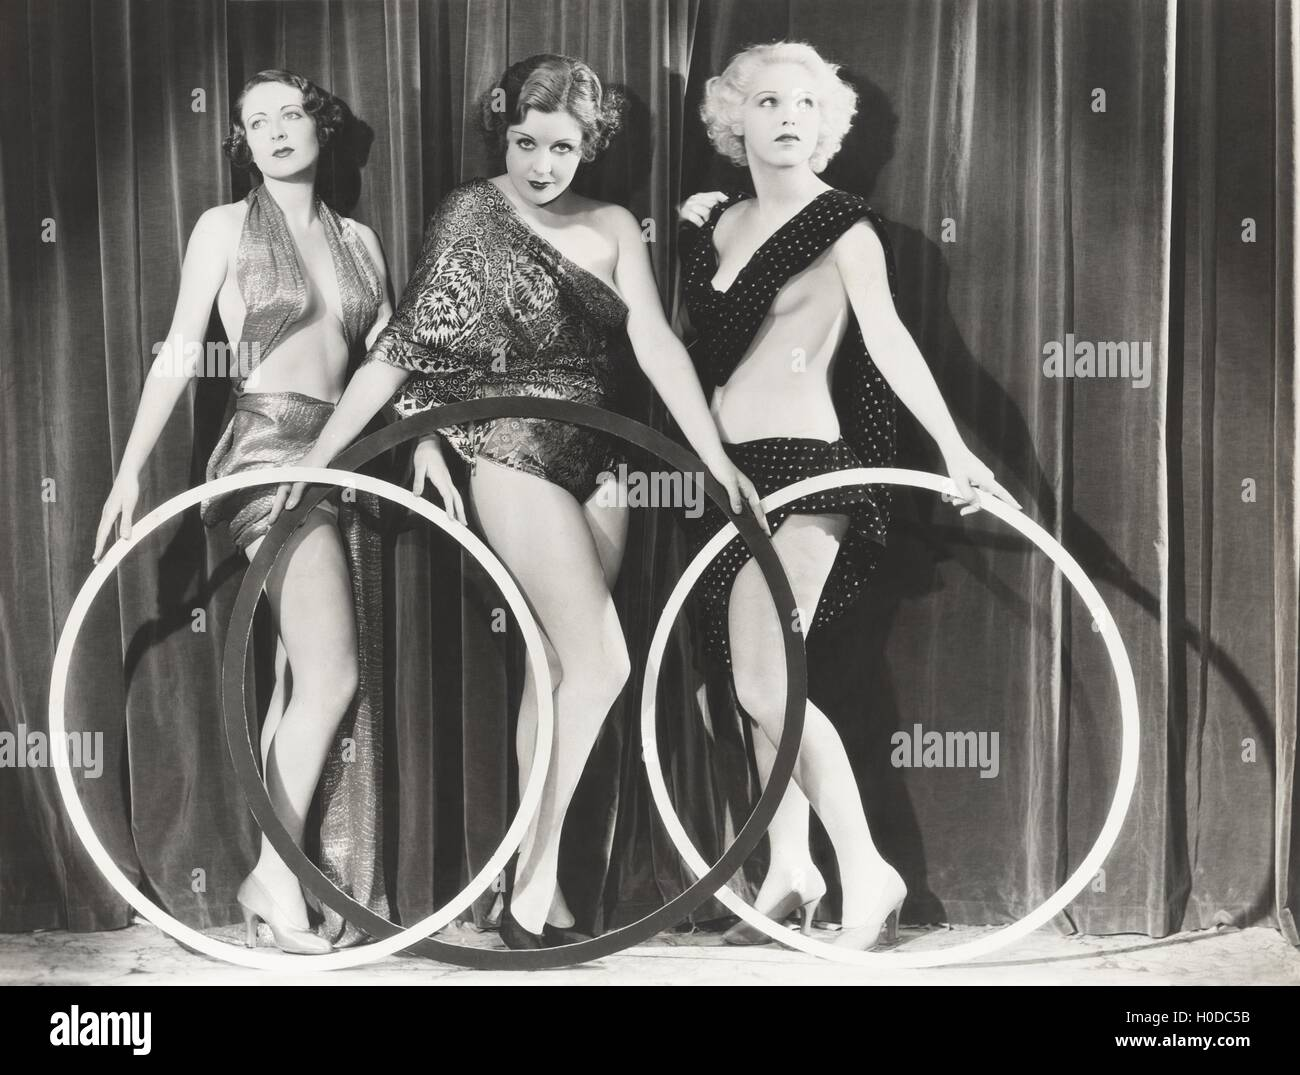 Three scantily clad women holding large rings - Stock Image